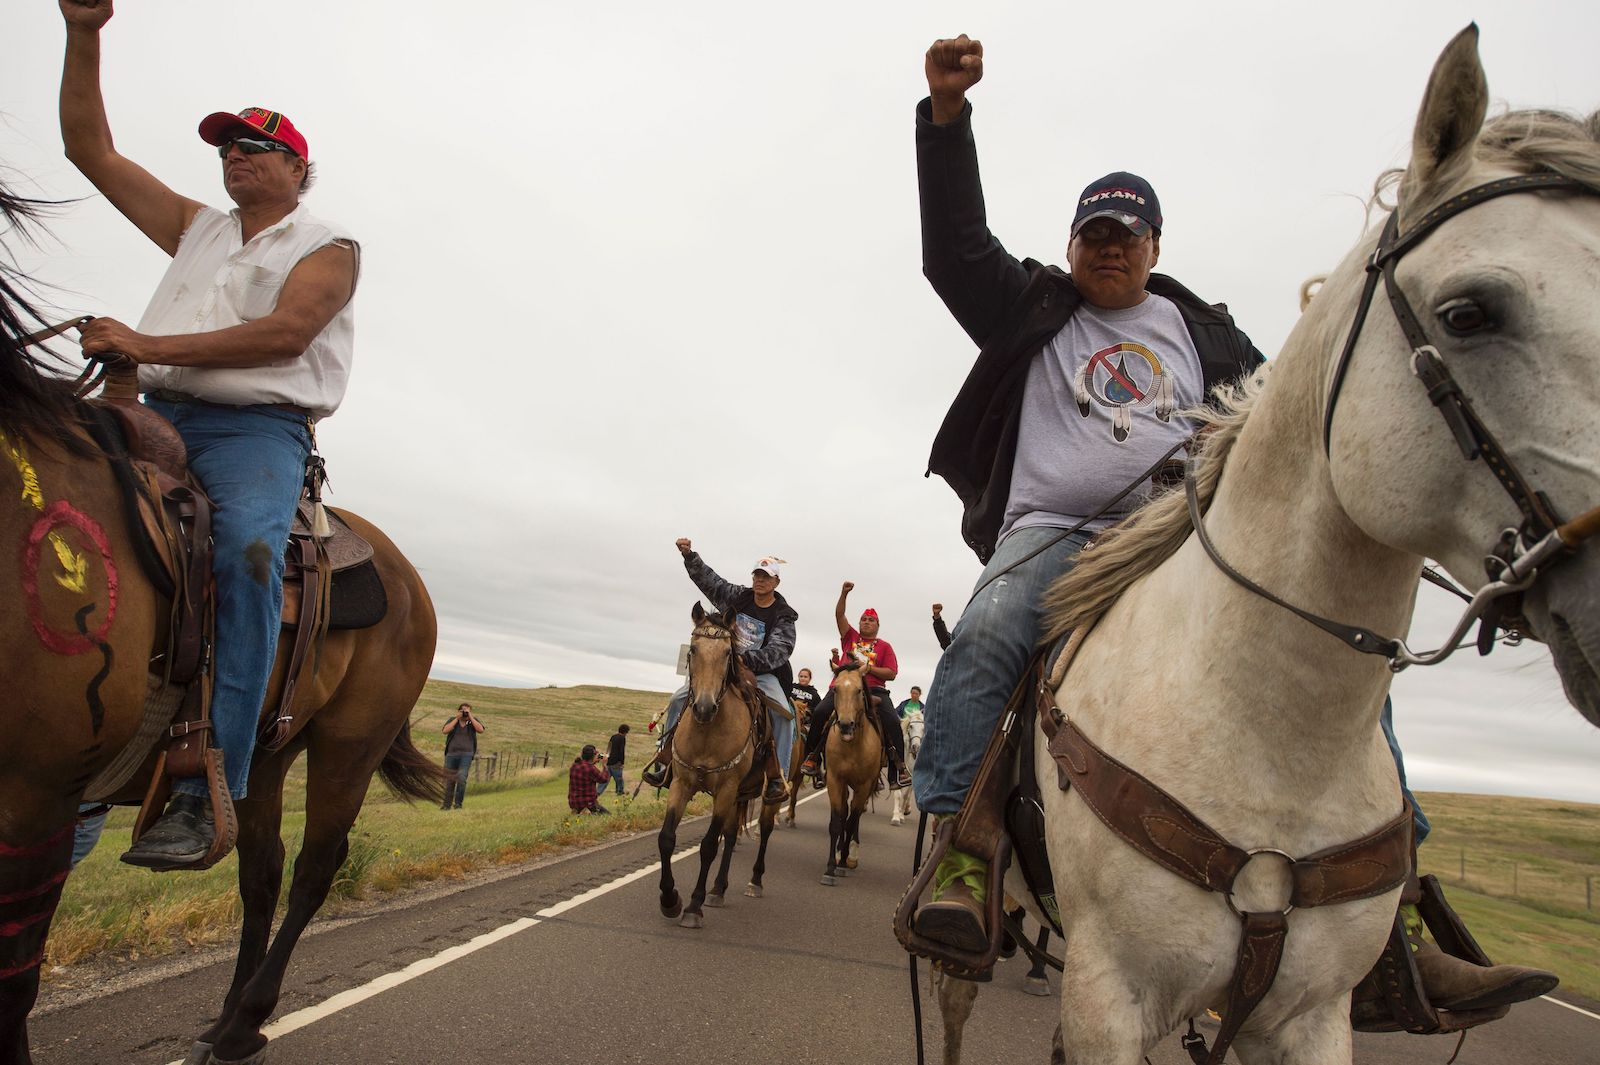 Indigenous activists on horseback raise their fists in protest